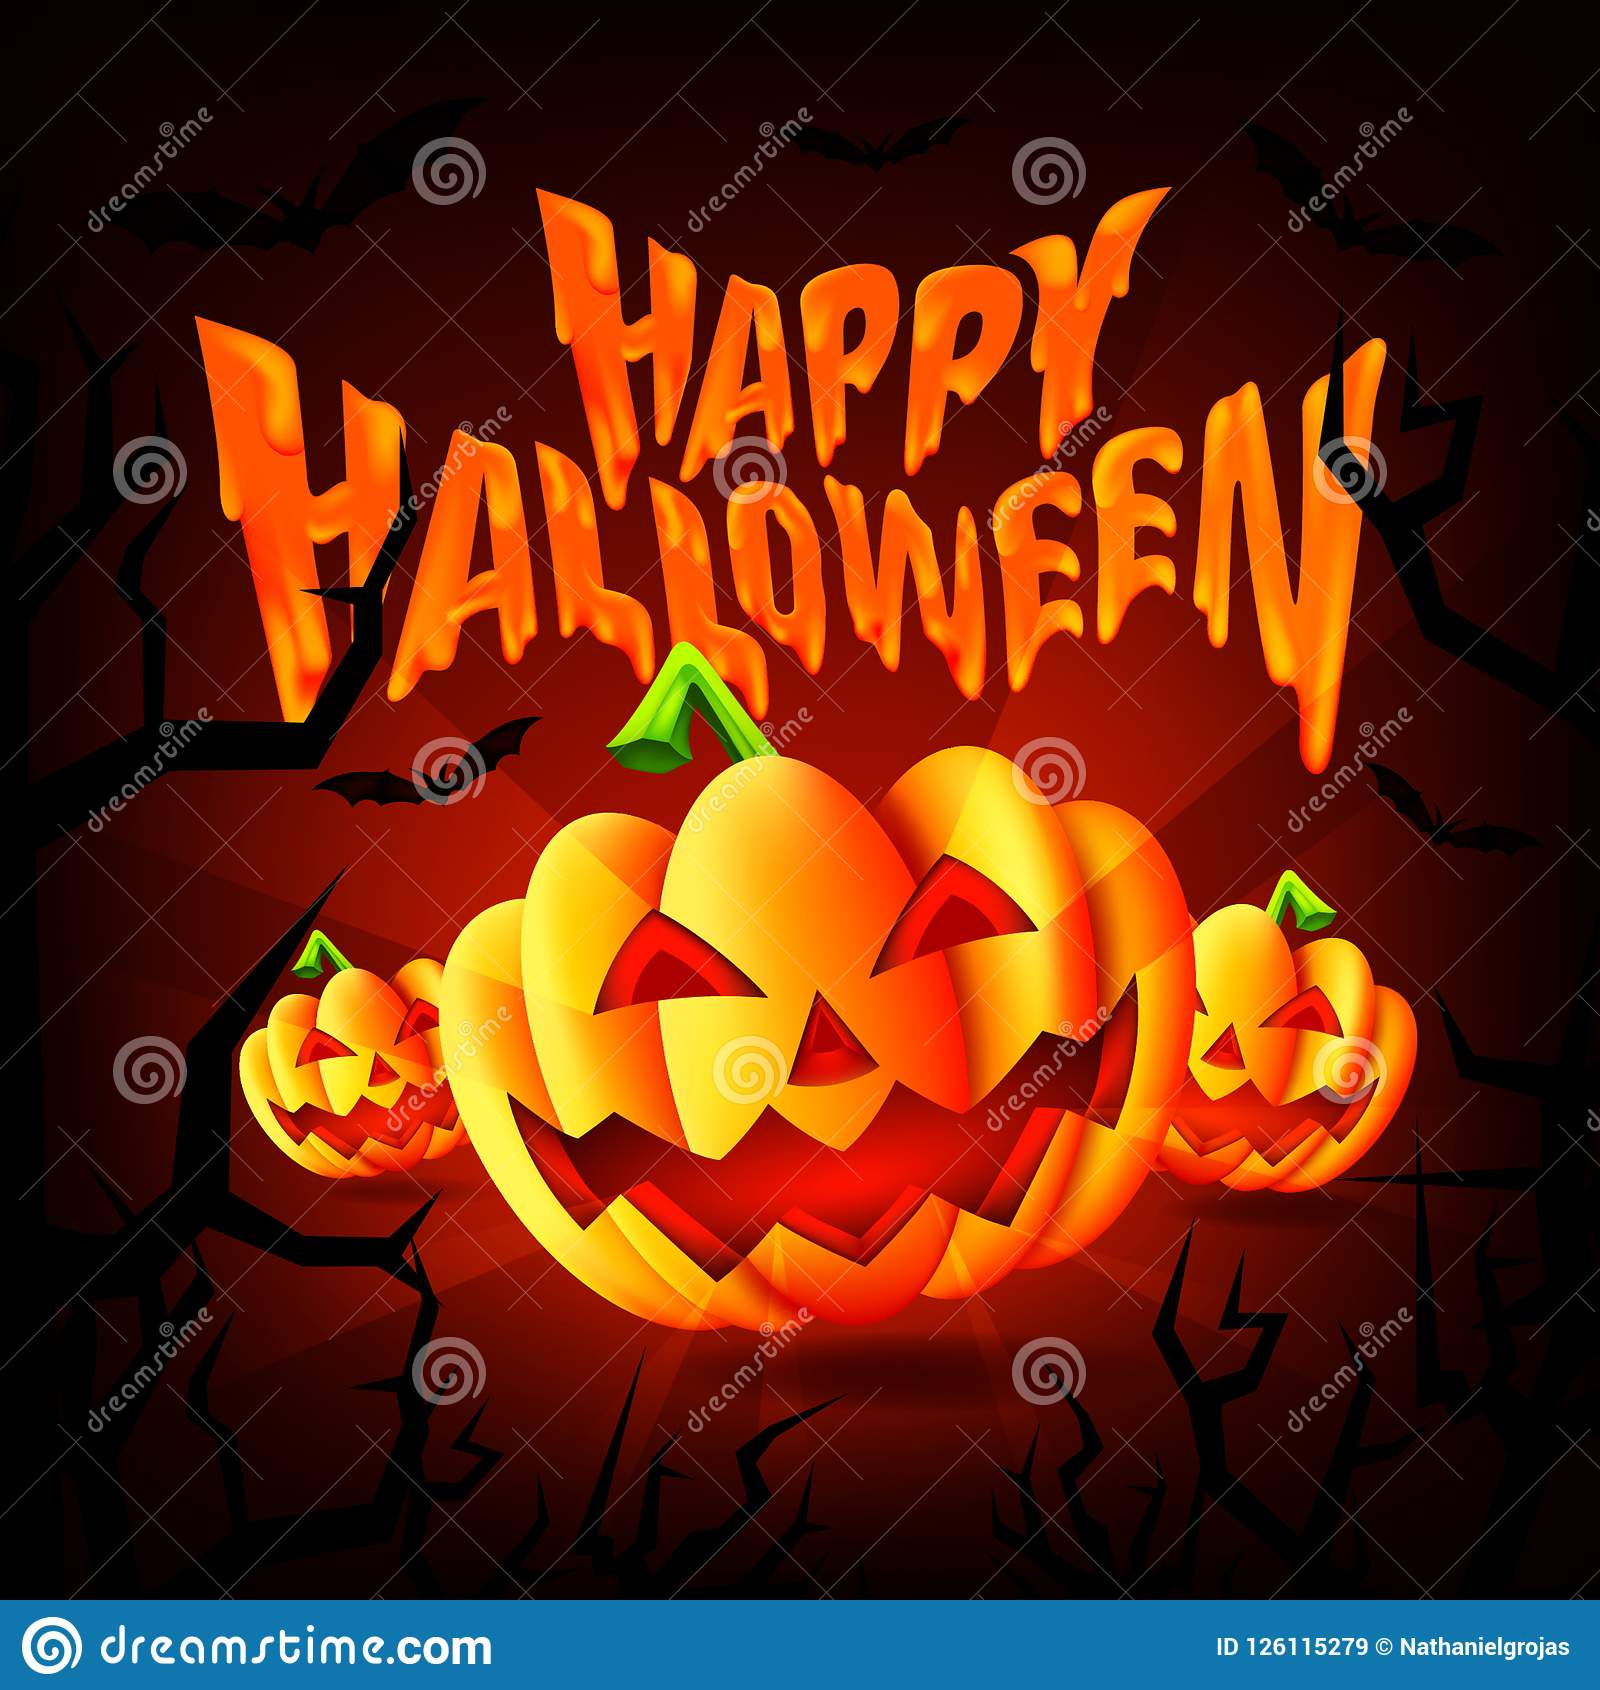 happy halloween party background with scary pumpkins and flying bats